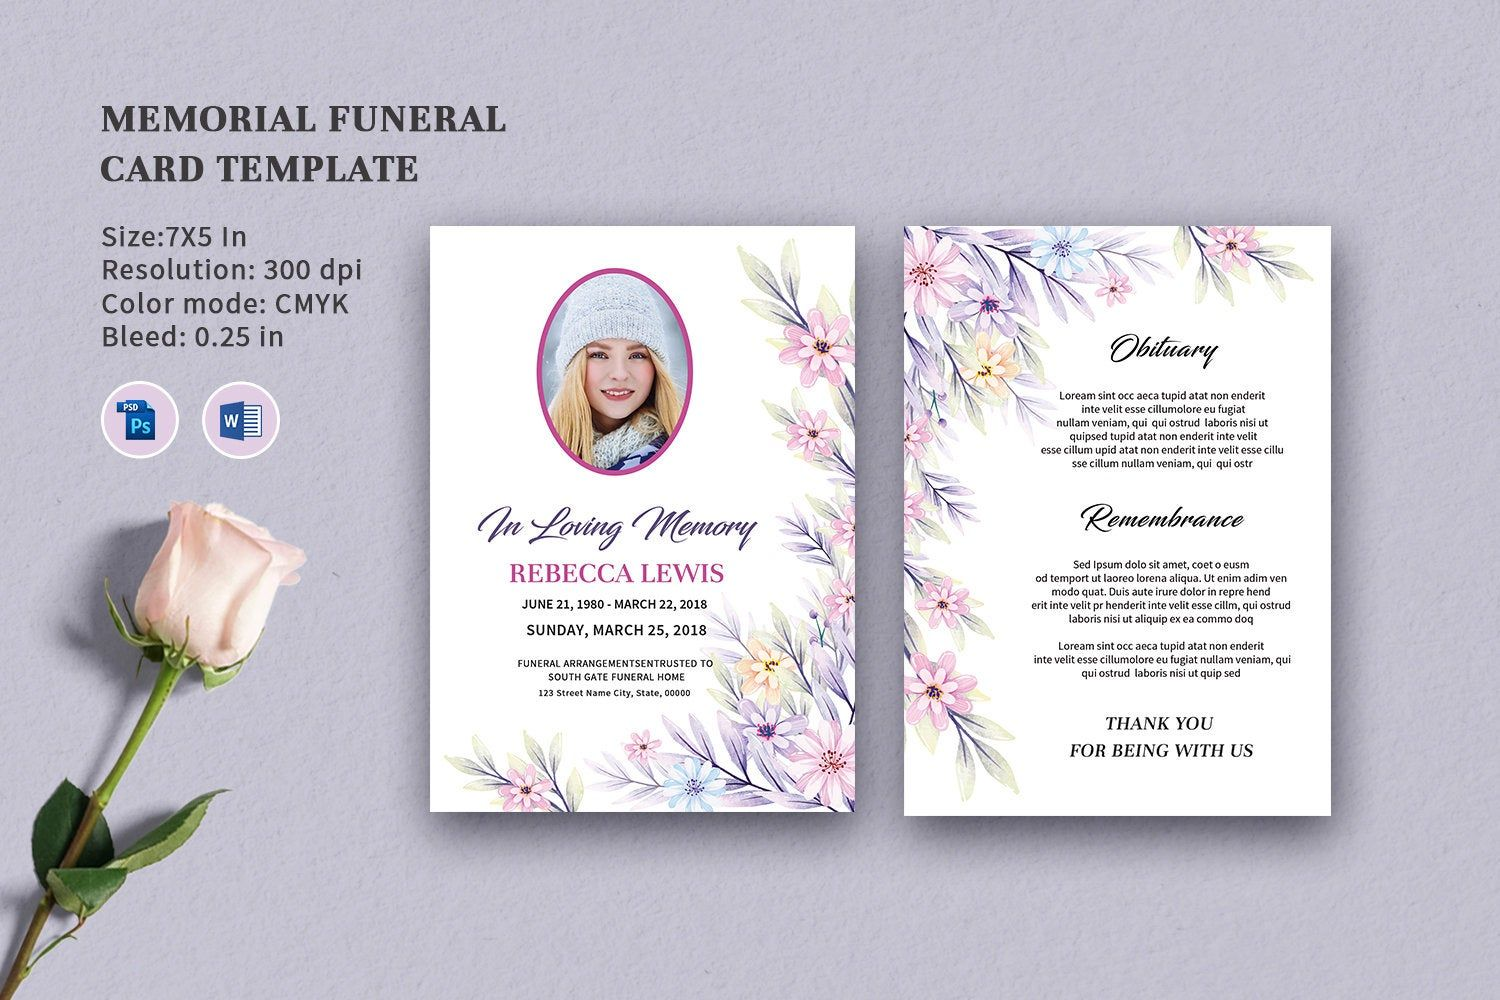 Funeral Program Template Obituary Template 5x7 Funeral Card Template Photoshop And Ms Word Template Instant Download Fp 405 Funeral Program Template Funeral Programs Funeral Program Template Free